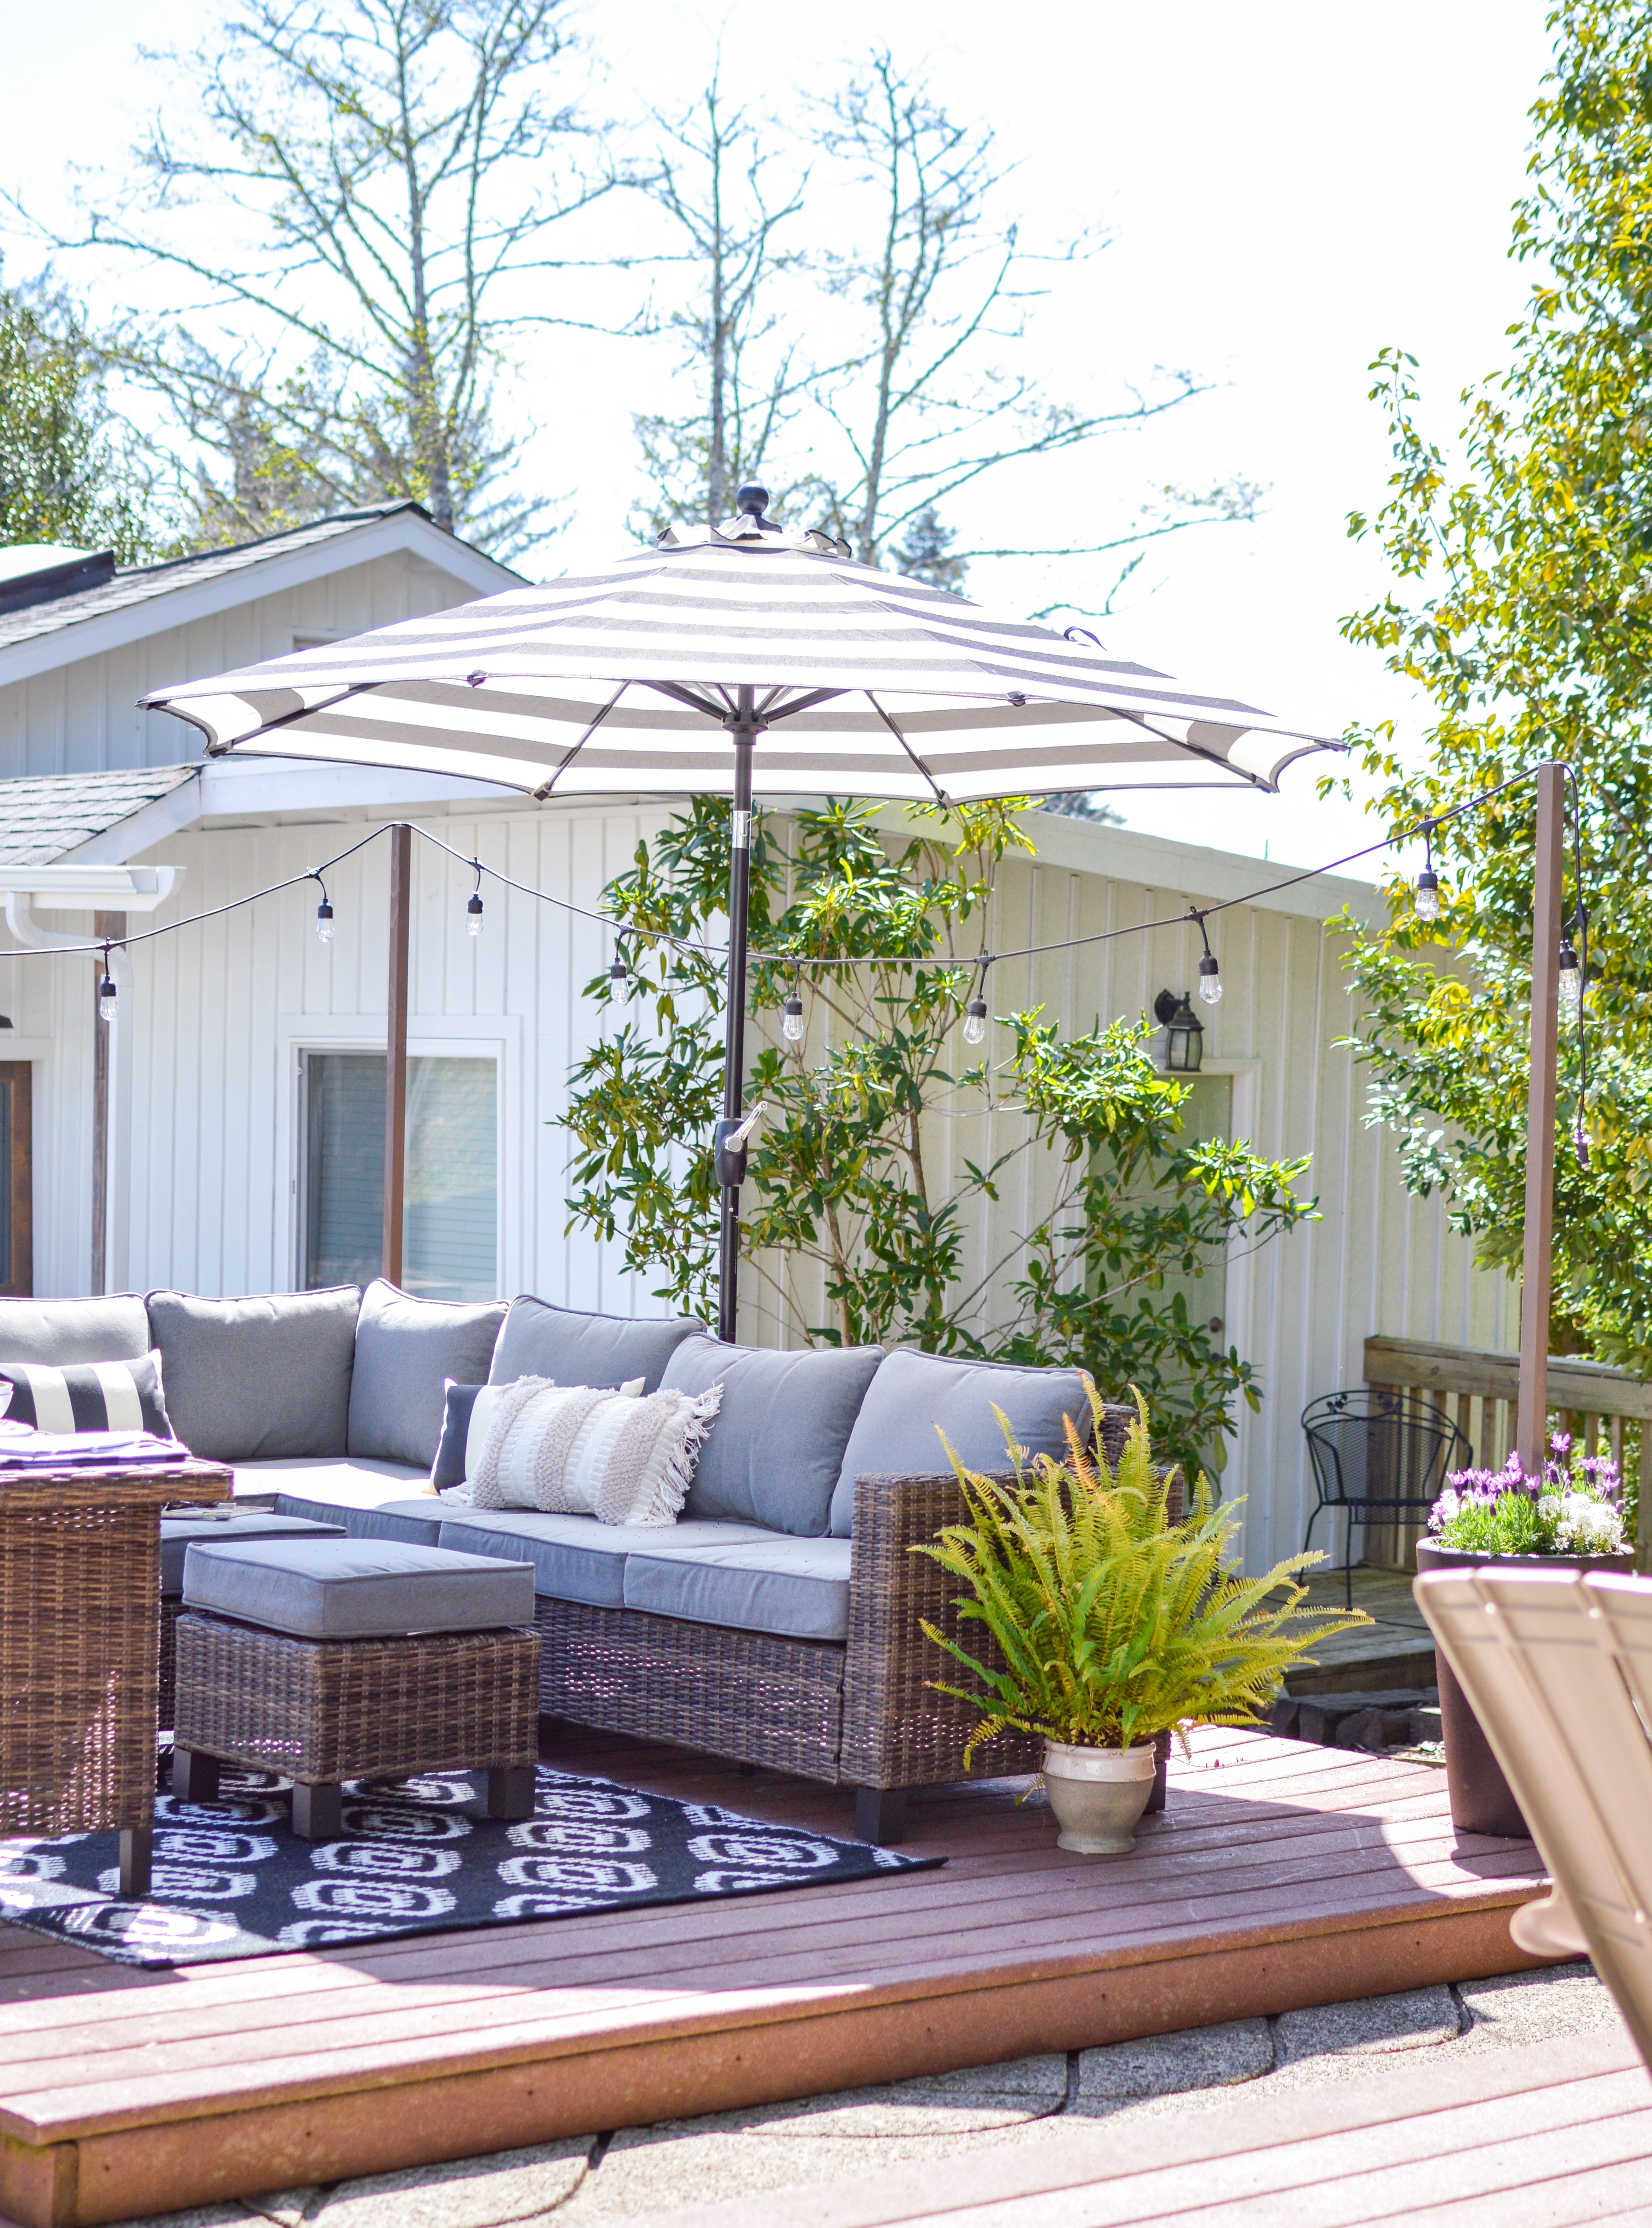 Everything You Need To Be Ready To Enjoy Your Porch And Patio Spaces Entertain And Relax Morning Til Night On A Budget With Better Homes Gardens Outdoor Patio Furniture Sets